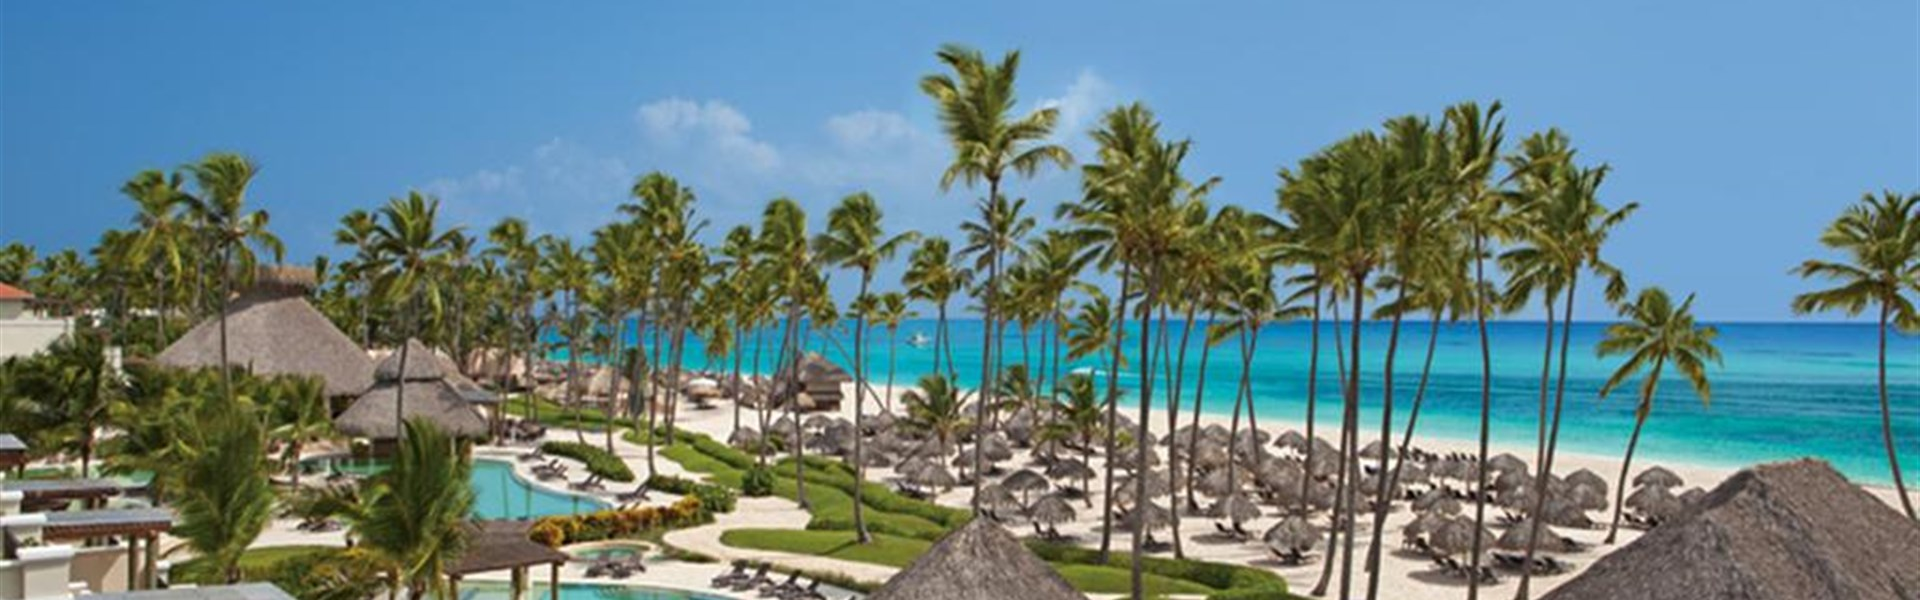 Marco Polo - Now Larimar Punta Cana (5*) -